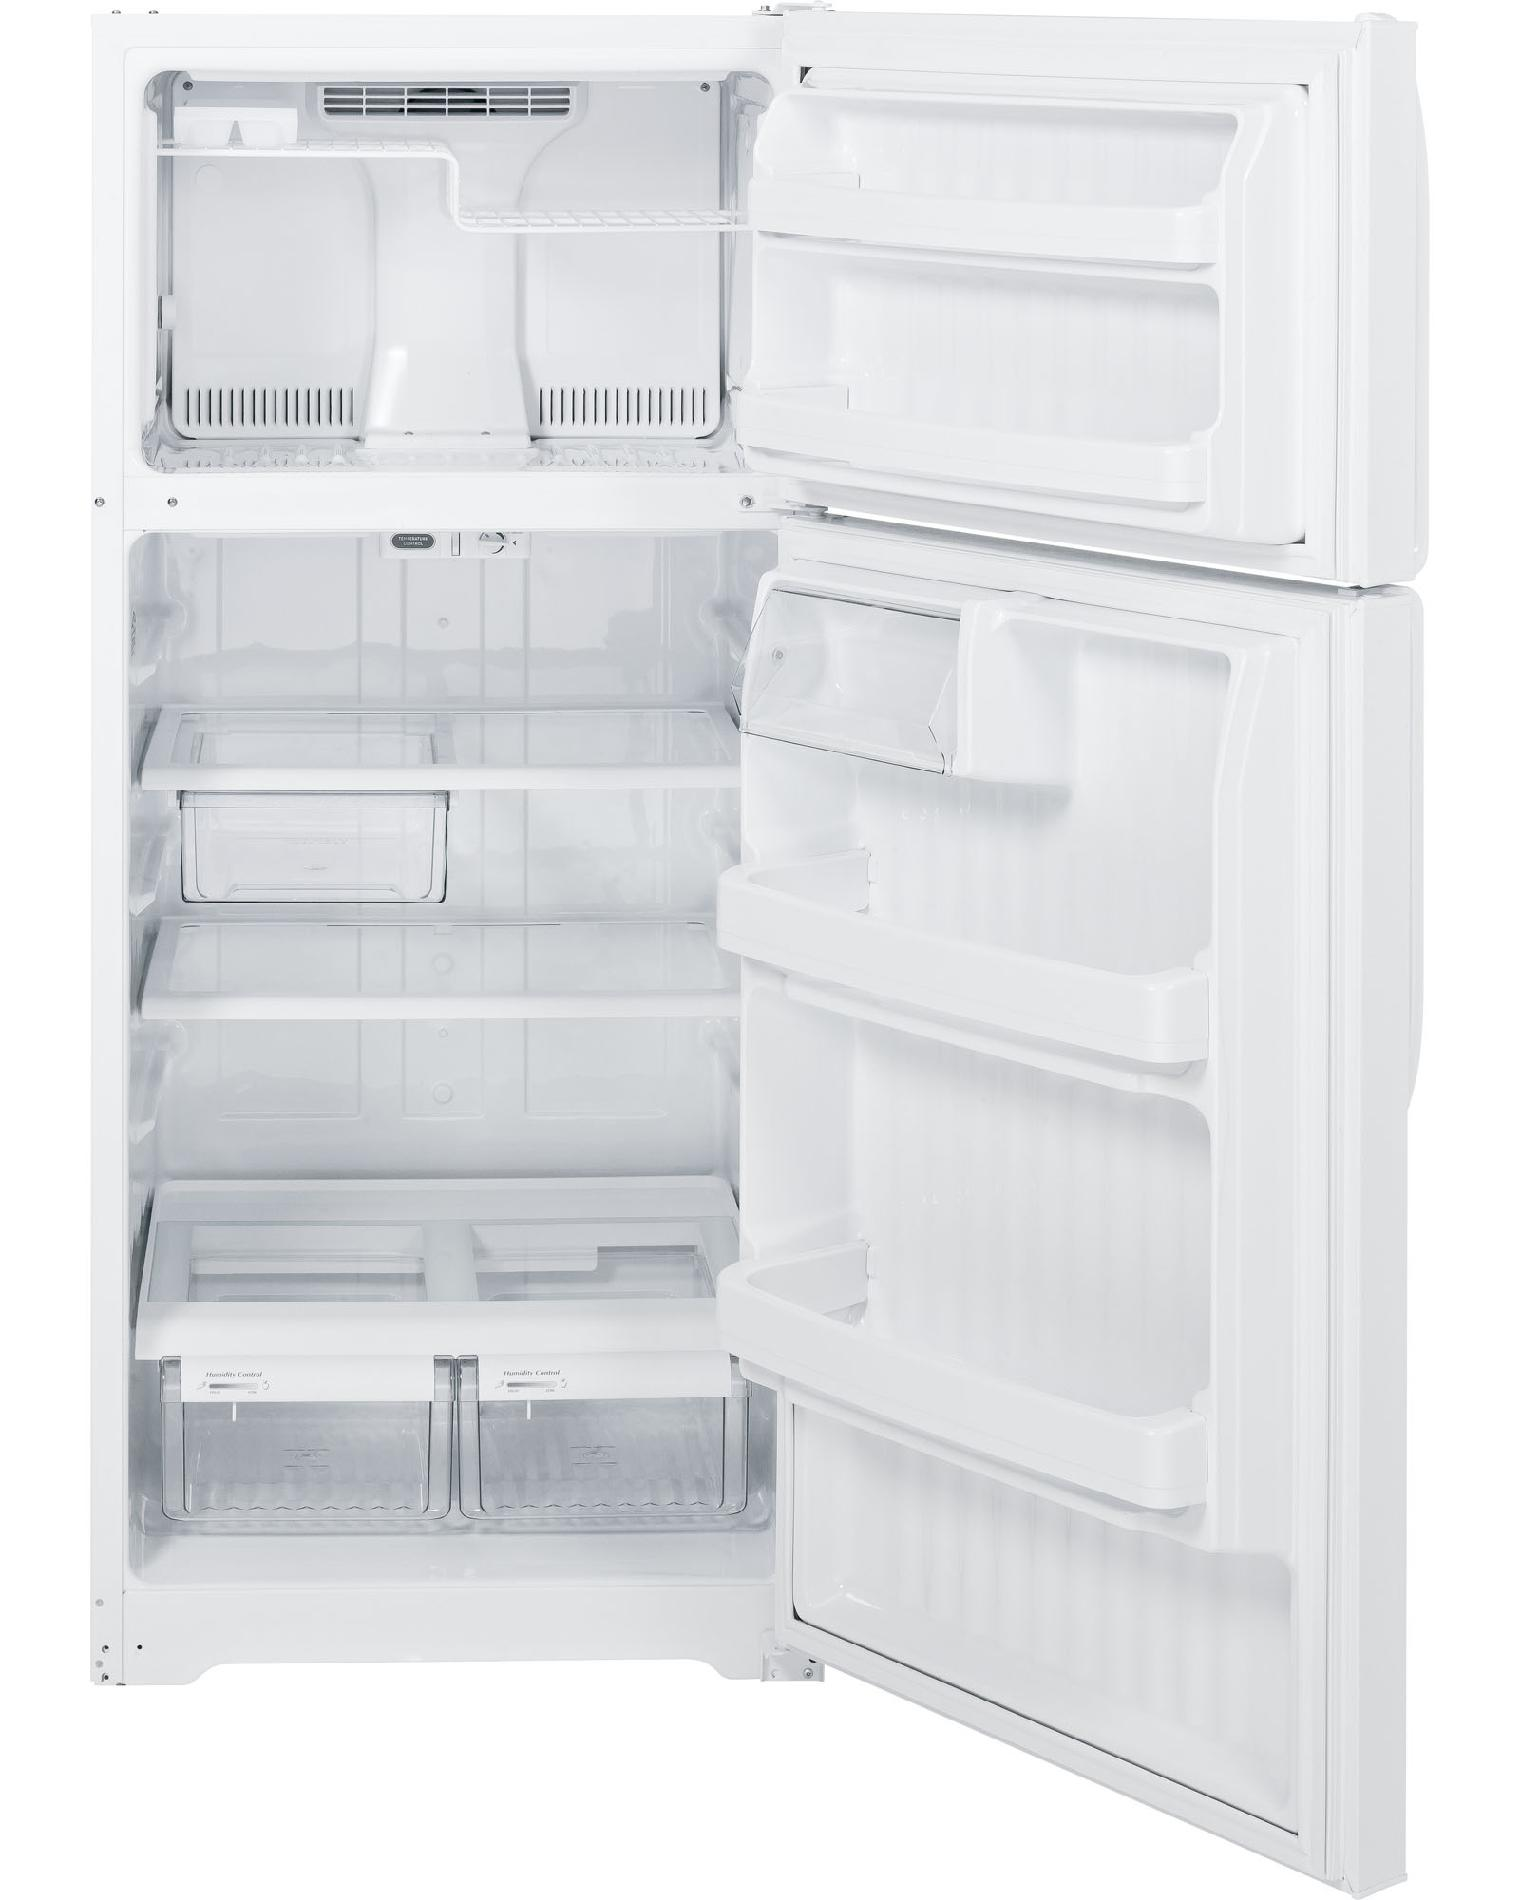 GE 16.5 cu. ft. Top-Freezer Refrigerator - White